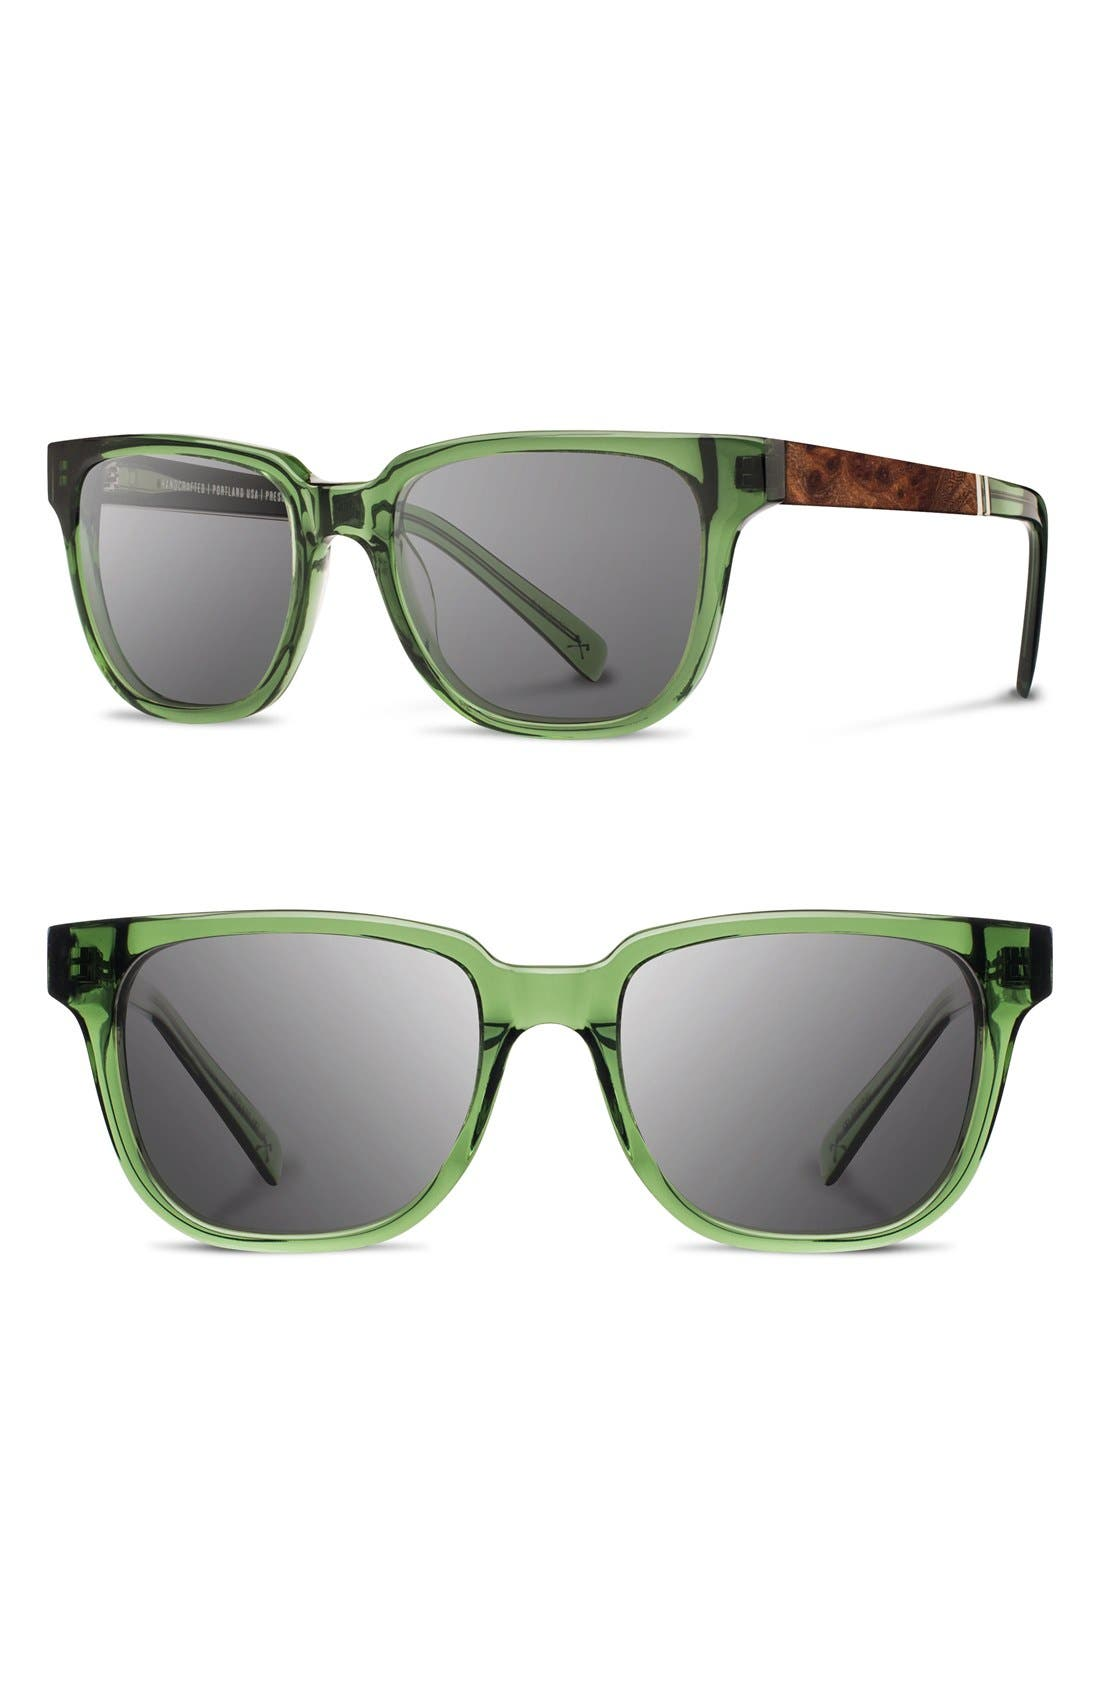 'Prescott' 52mm Acetate & Wood Sunglasses,                             Main thumbnail 1, color,                             EMERALD/ ELM BURL/ GREY